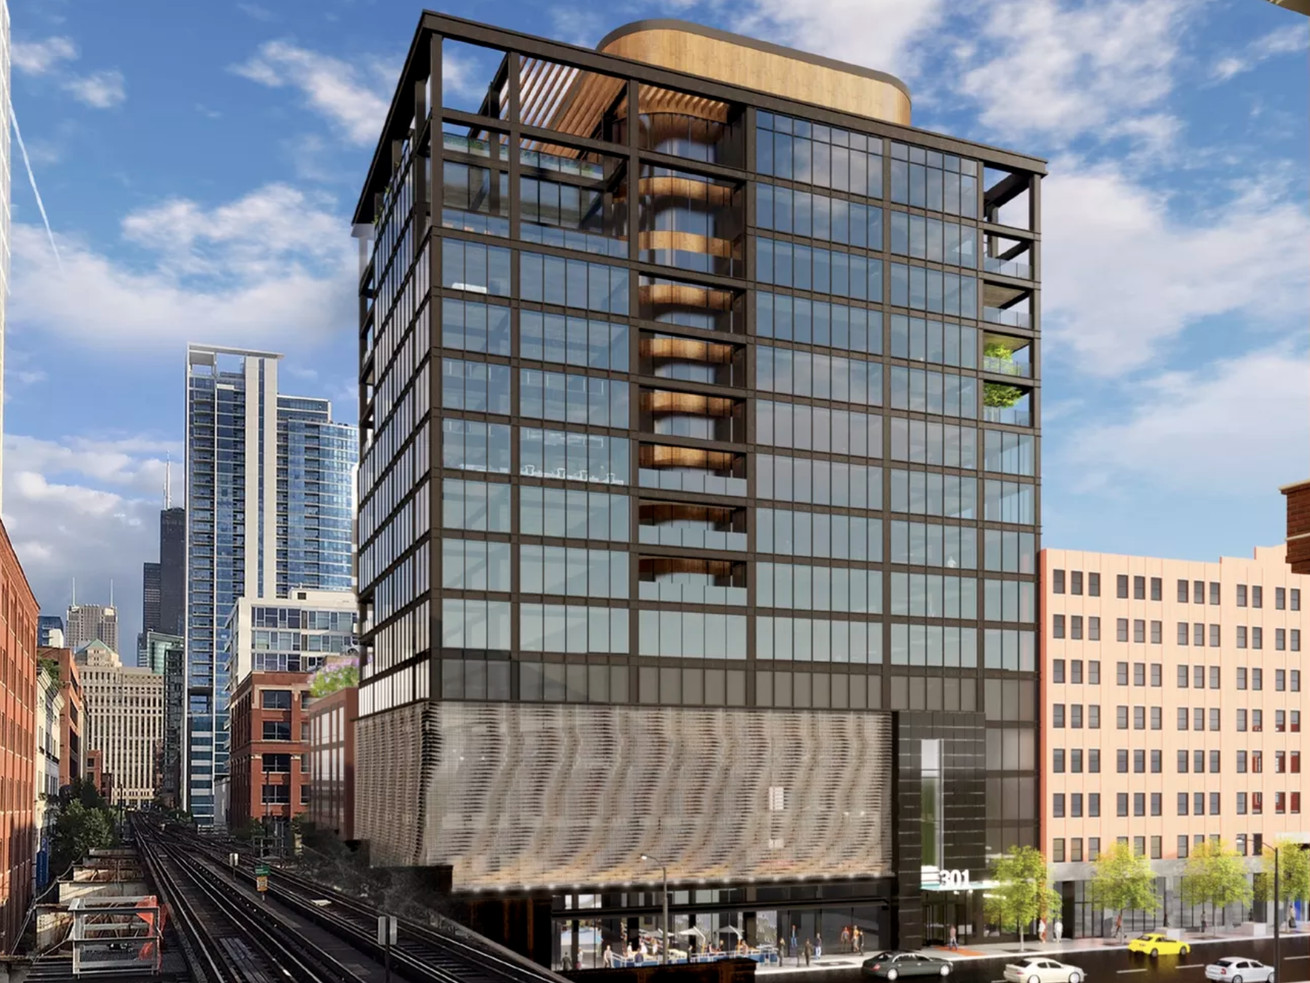 A 15-story office tower rises next to elevated train tracks. The building has a black metal frame with multiple balcony cutouts and an undulating mesh screen at its base.